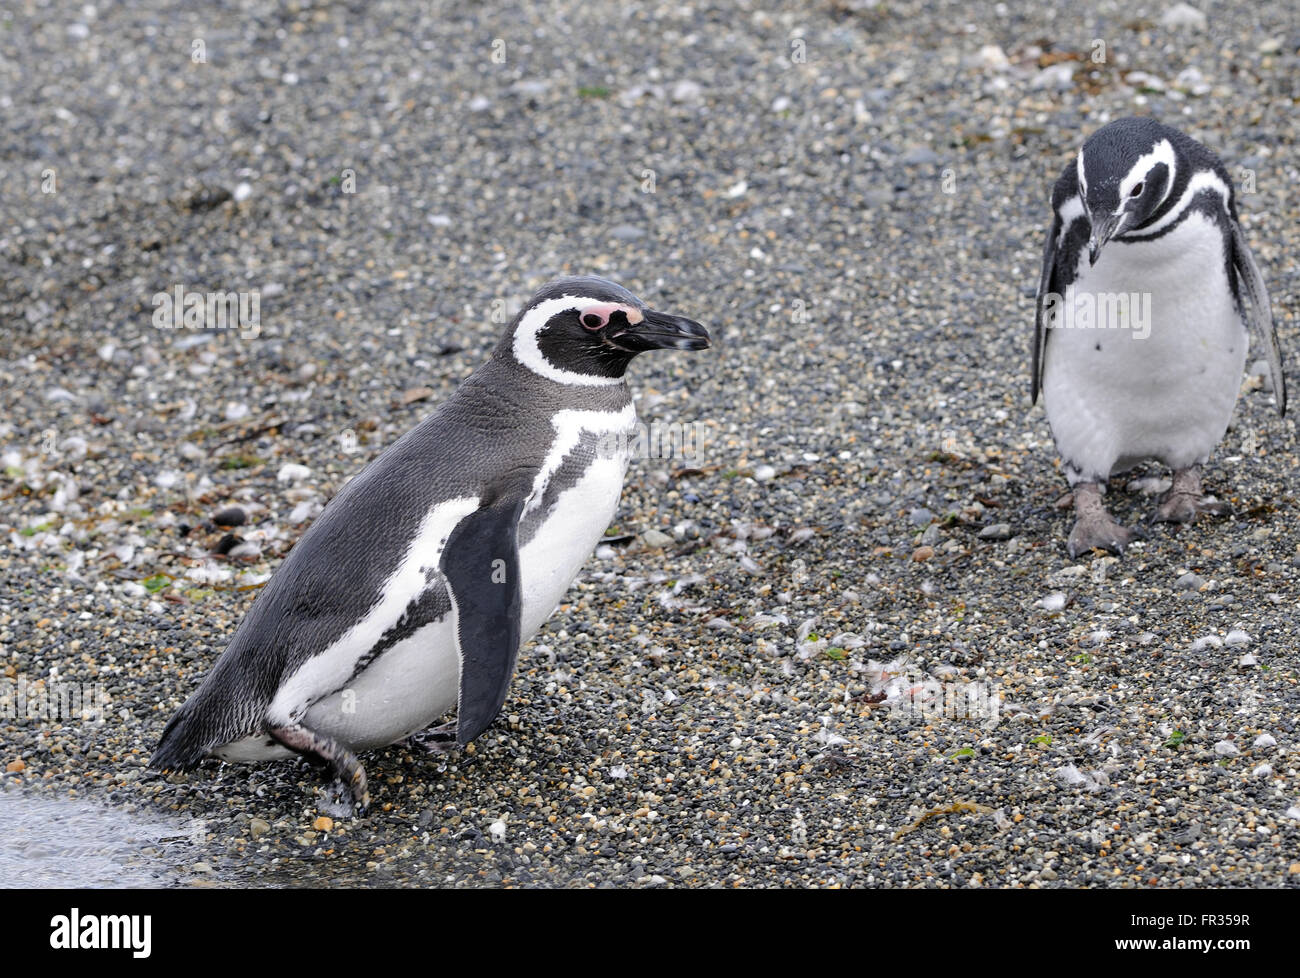 Magellanic Penguins (Spheniscus magellanicus) at their breeding colony on Isla Martillo in the Beagle Channel. - Stock Image